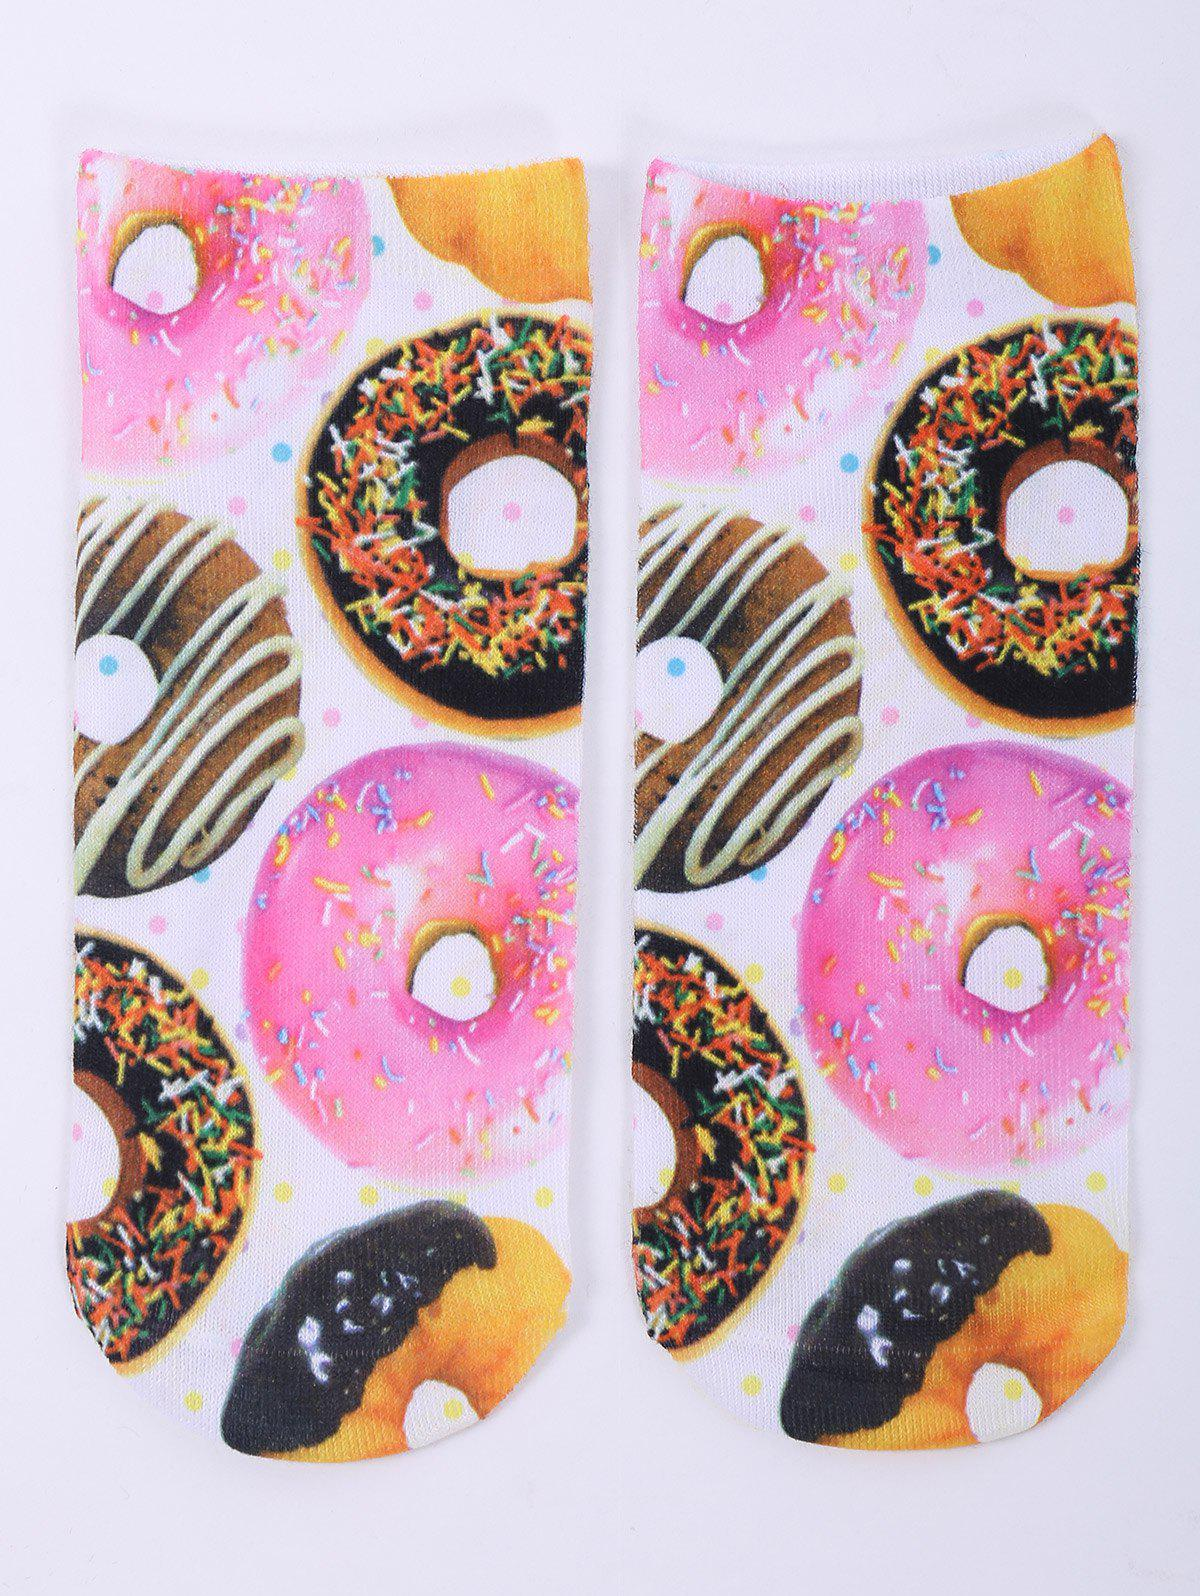 One Side 3D Donuts Printed Crazy Ankle SocksACCESSORIES<br><br>Color: WHITE; Type: Socks; Group: Adult; Gender: For Women; Style: Fashion; Pattern Type: Others; Material: Spandex; Length(CM): 20CM; Width(CM): 8CM; Weight: 0.100kg; Package Contents: 1 x Socks(Pair);